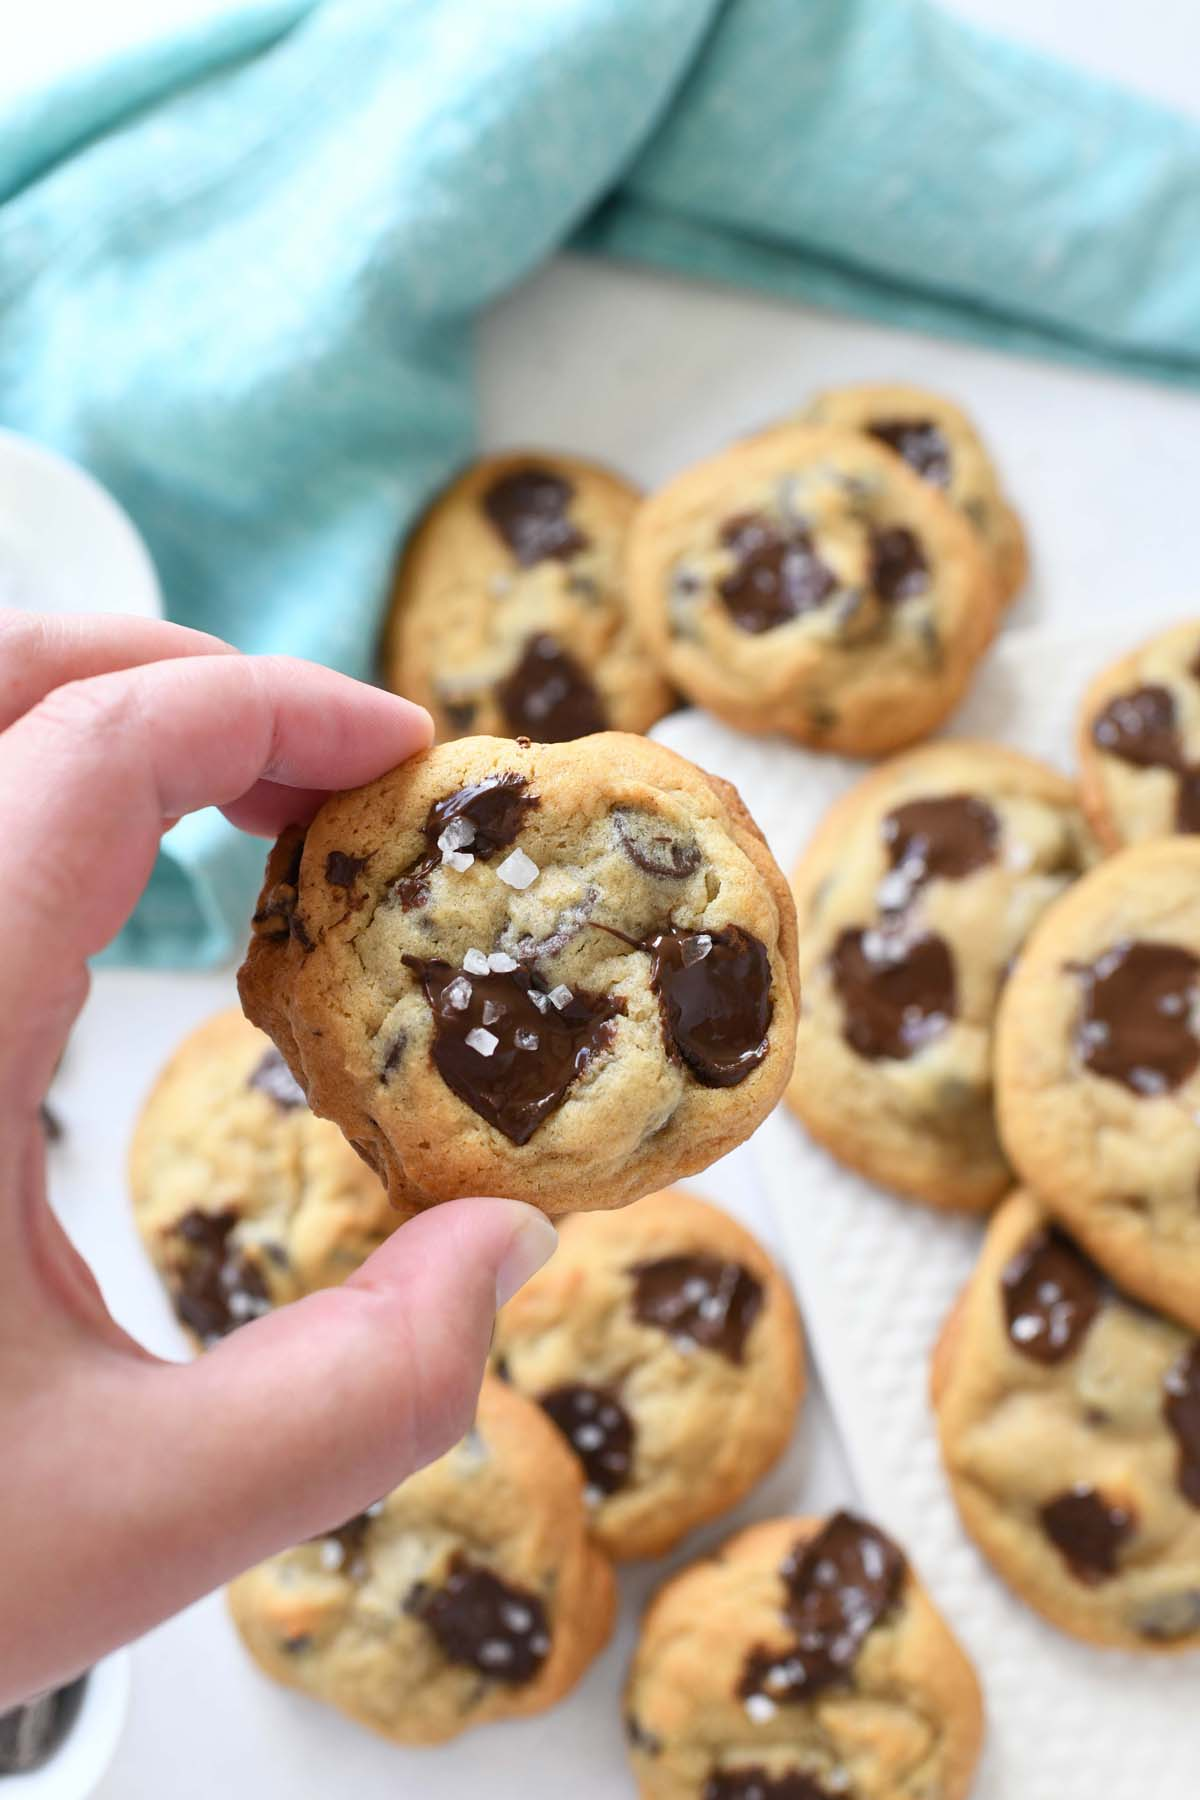 Chewy chocolate chip cookies in a hand.